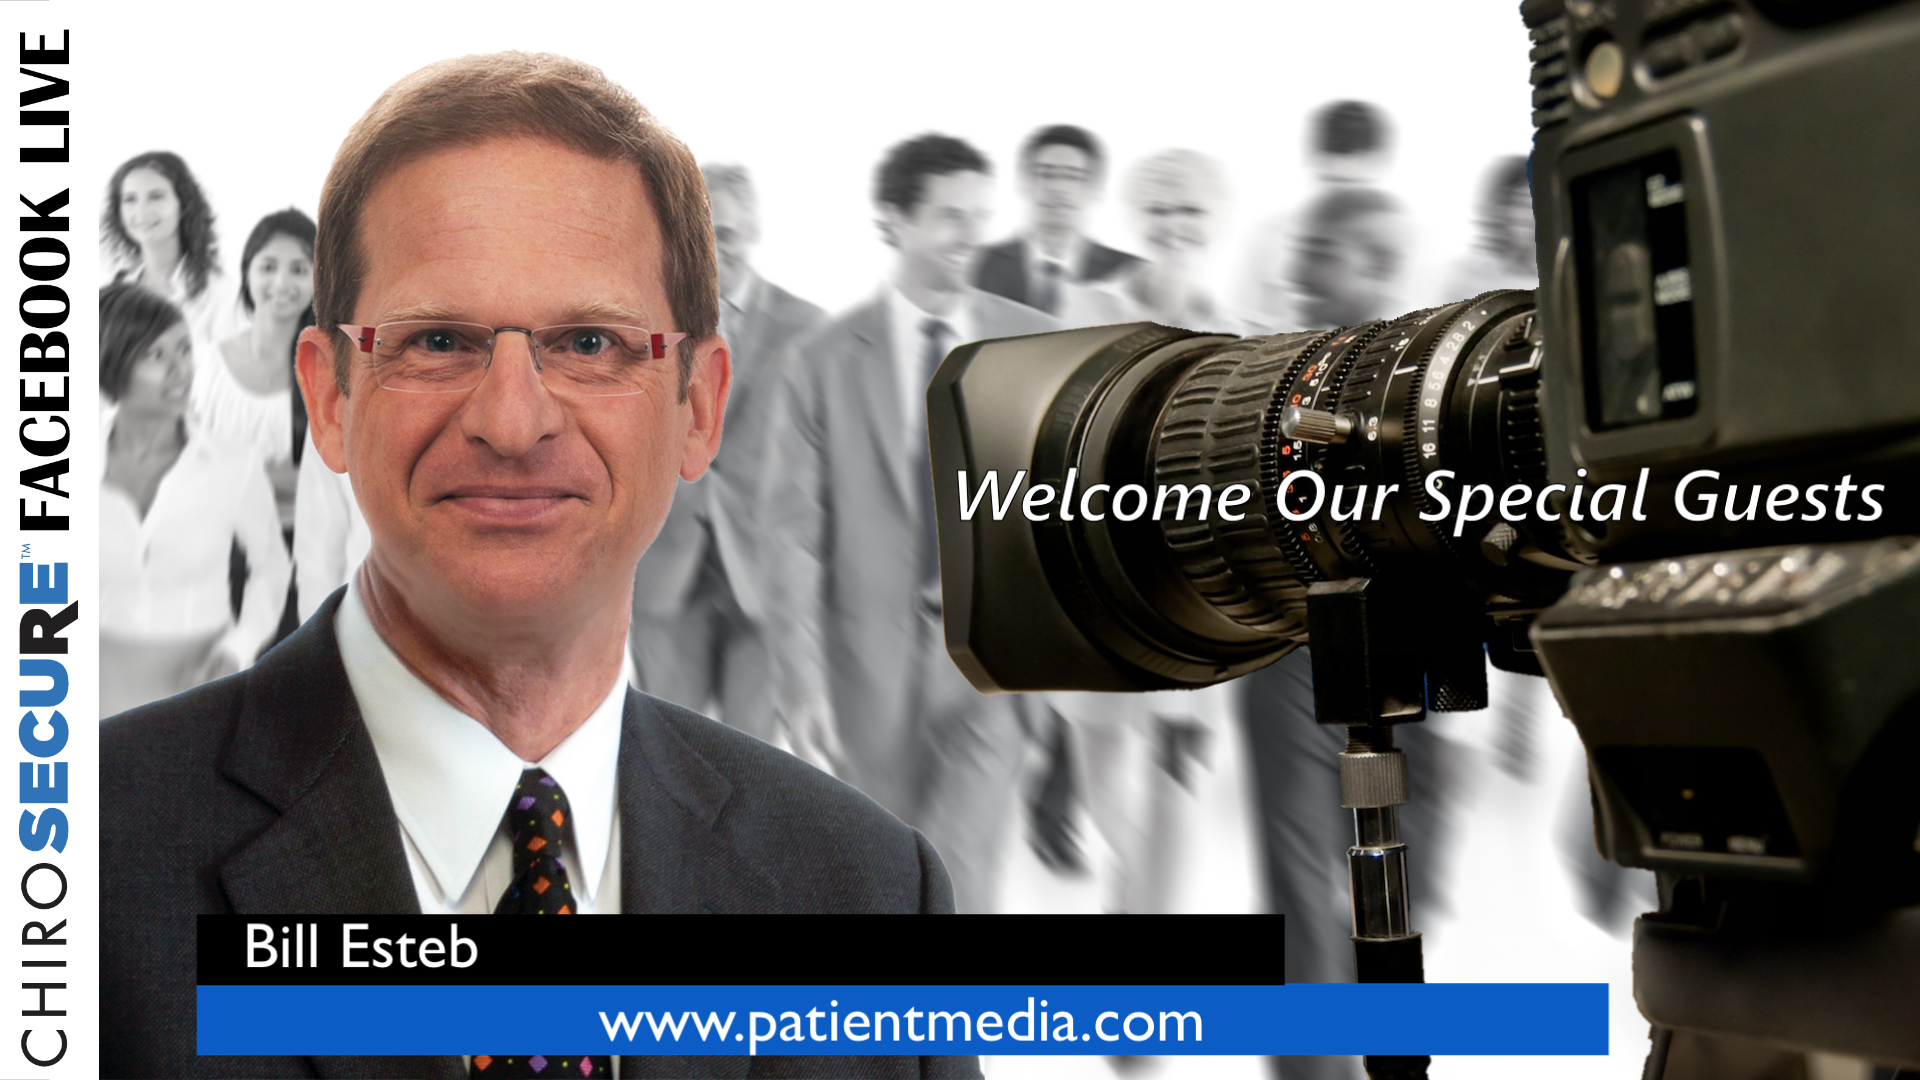 Thumbnail Image for Bill Esteb Patient Media